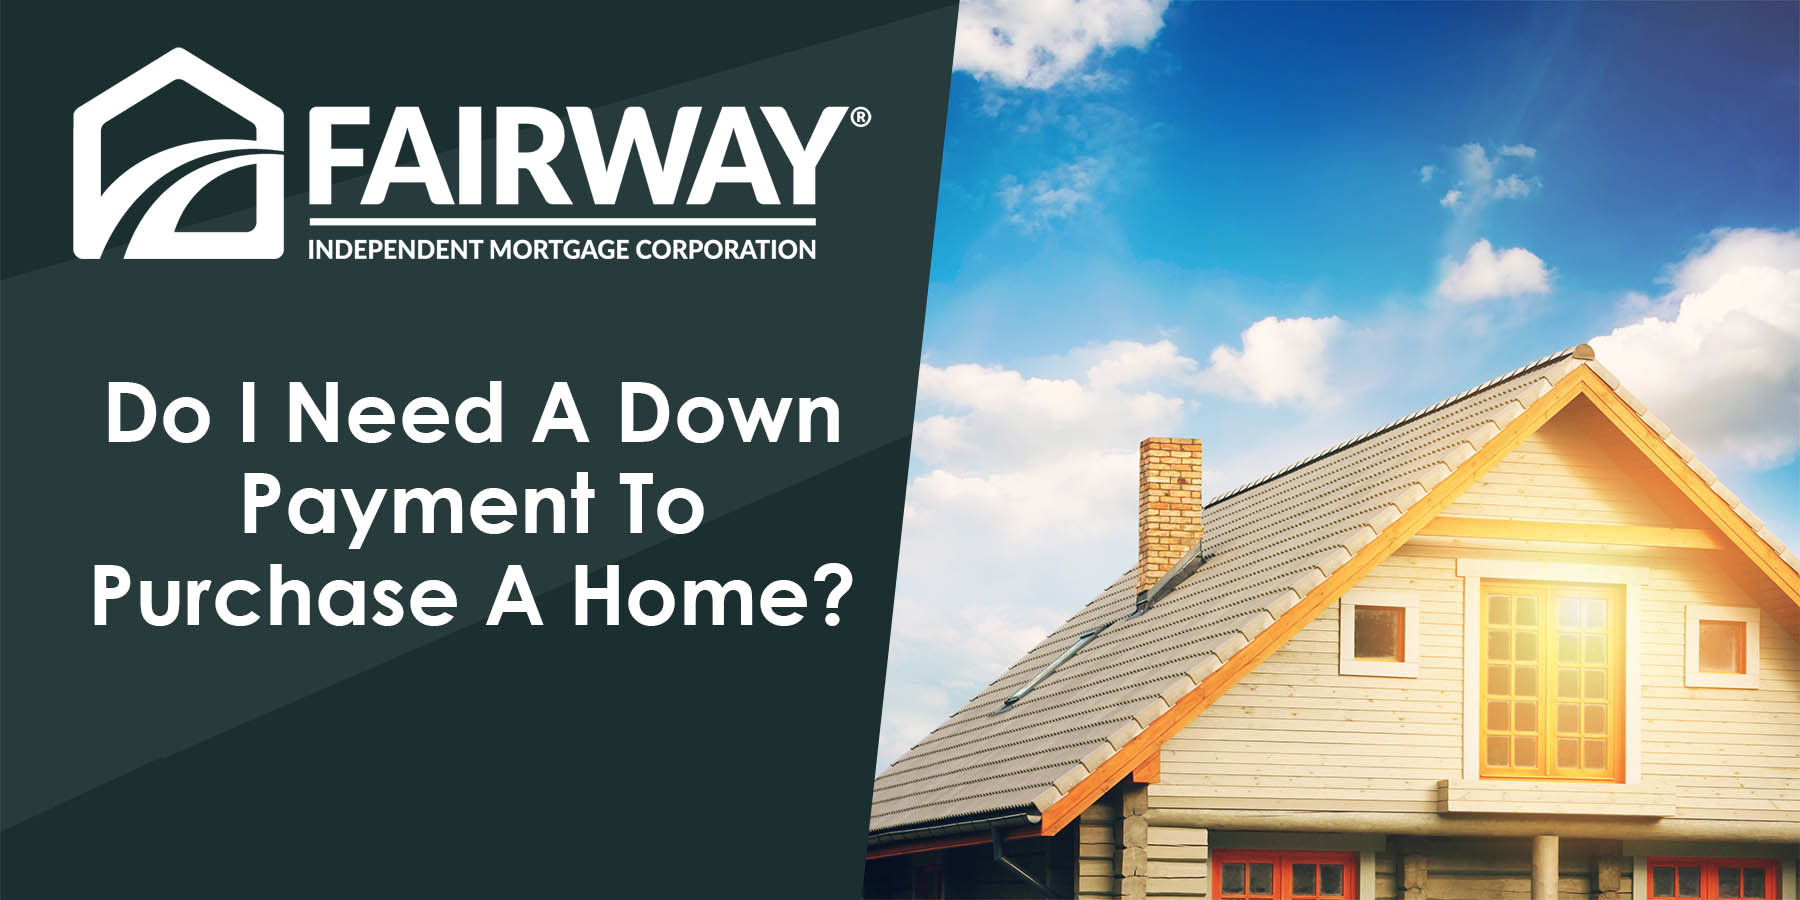 Do I Need A Down Payment To Purchase A Home?